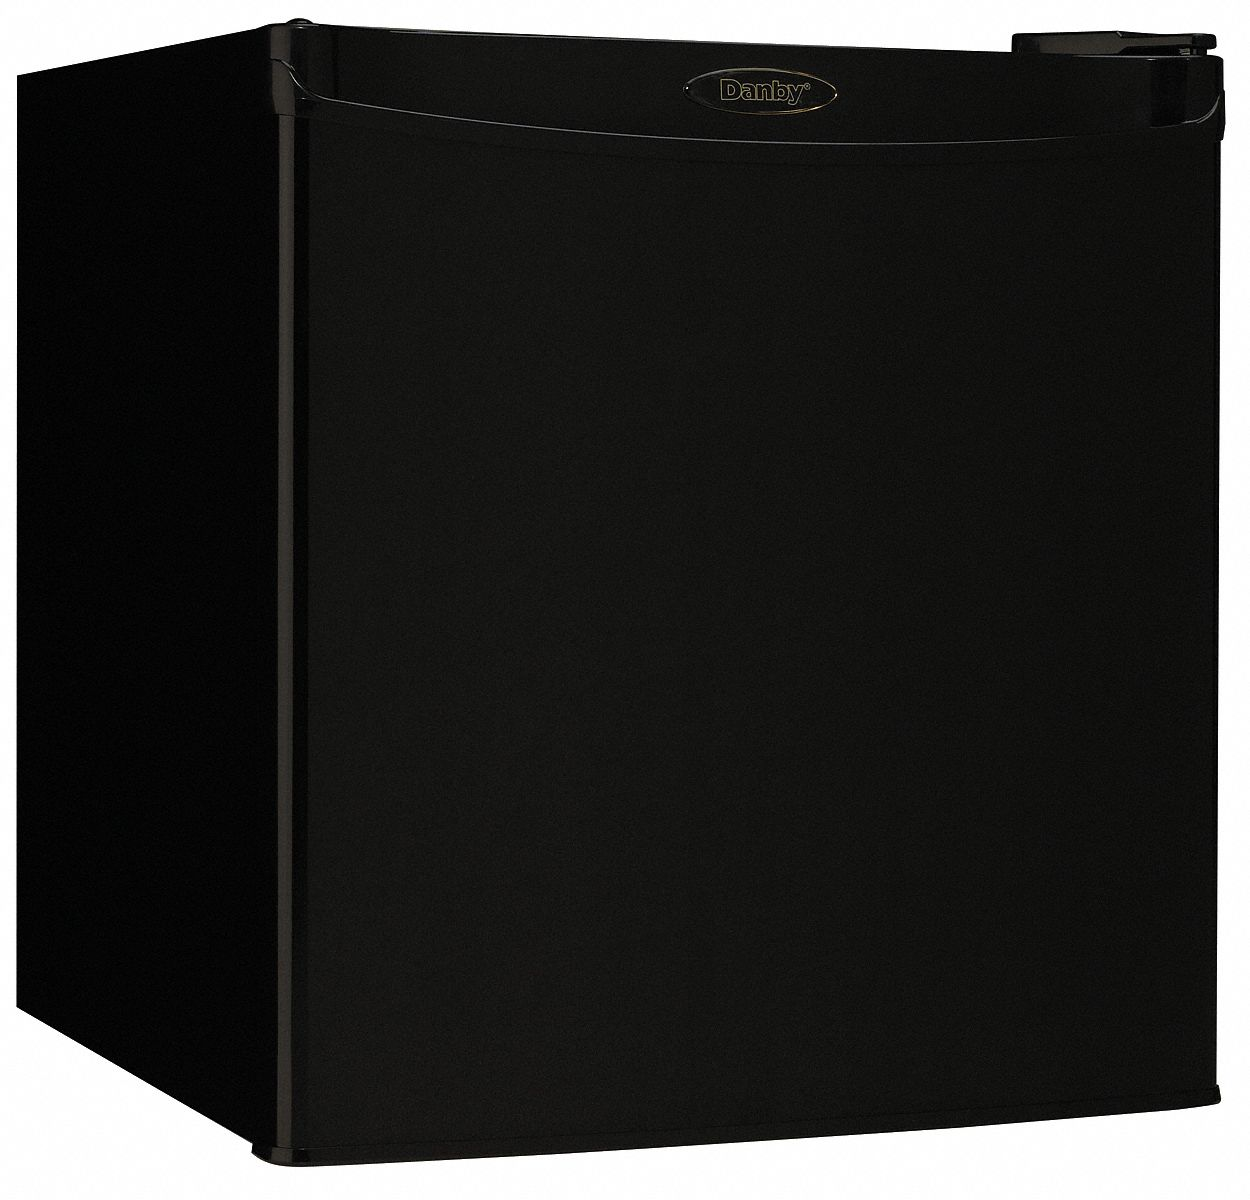 Compact Refrigerator with Freezer Section, Residential, Black, 17 5/8 in Overall Width